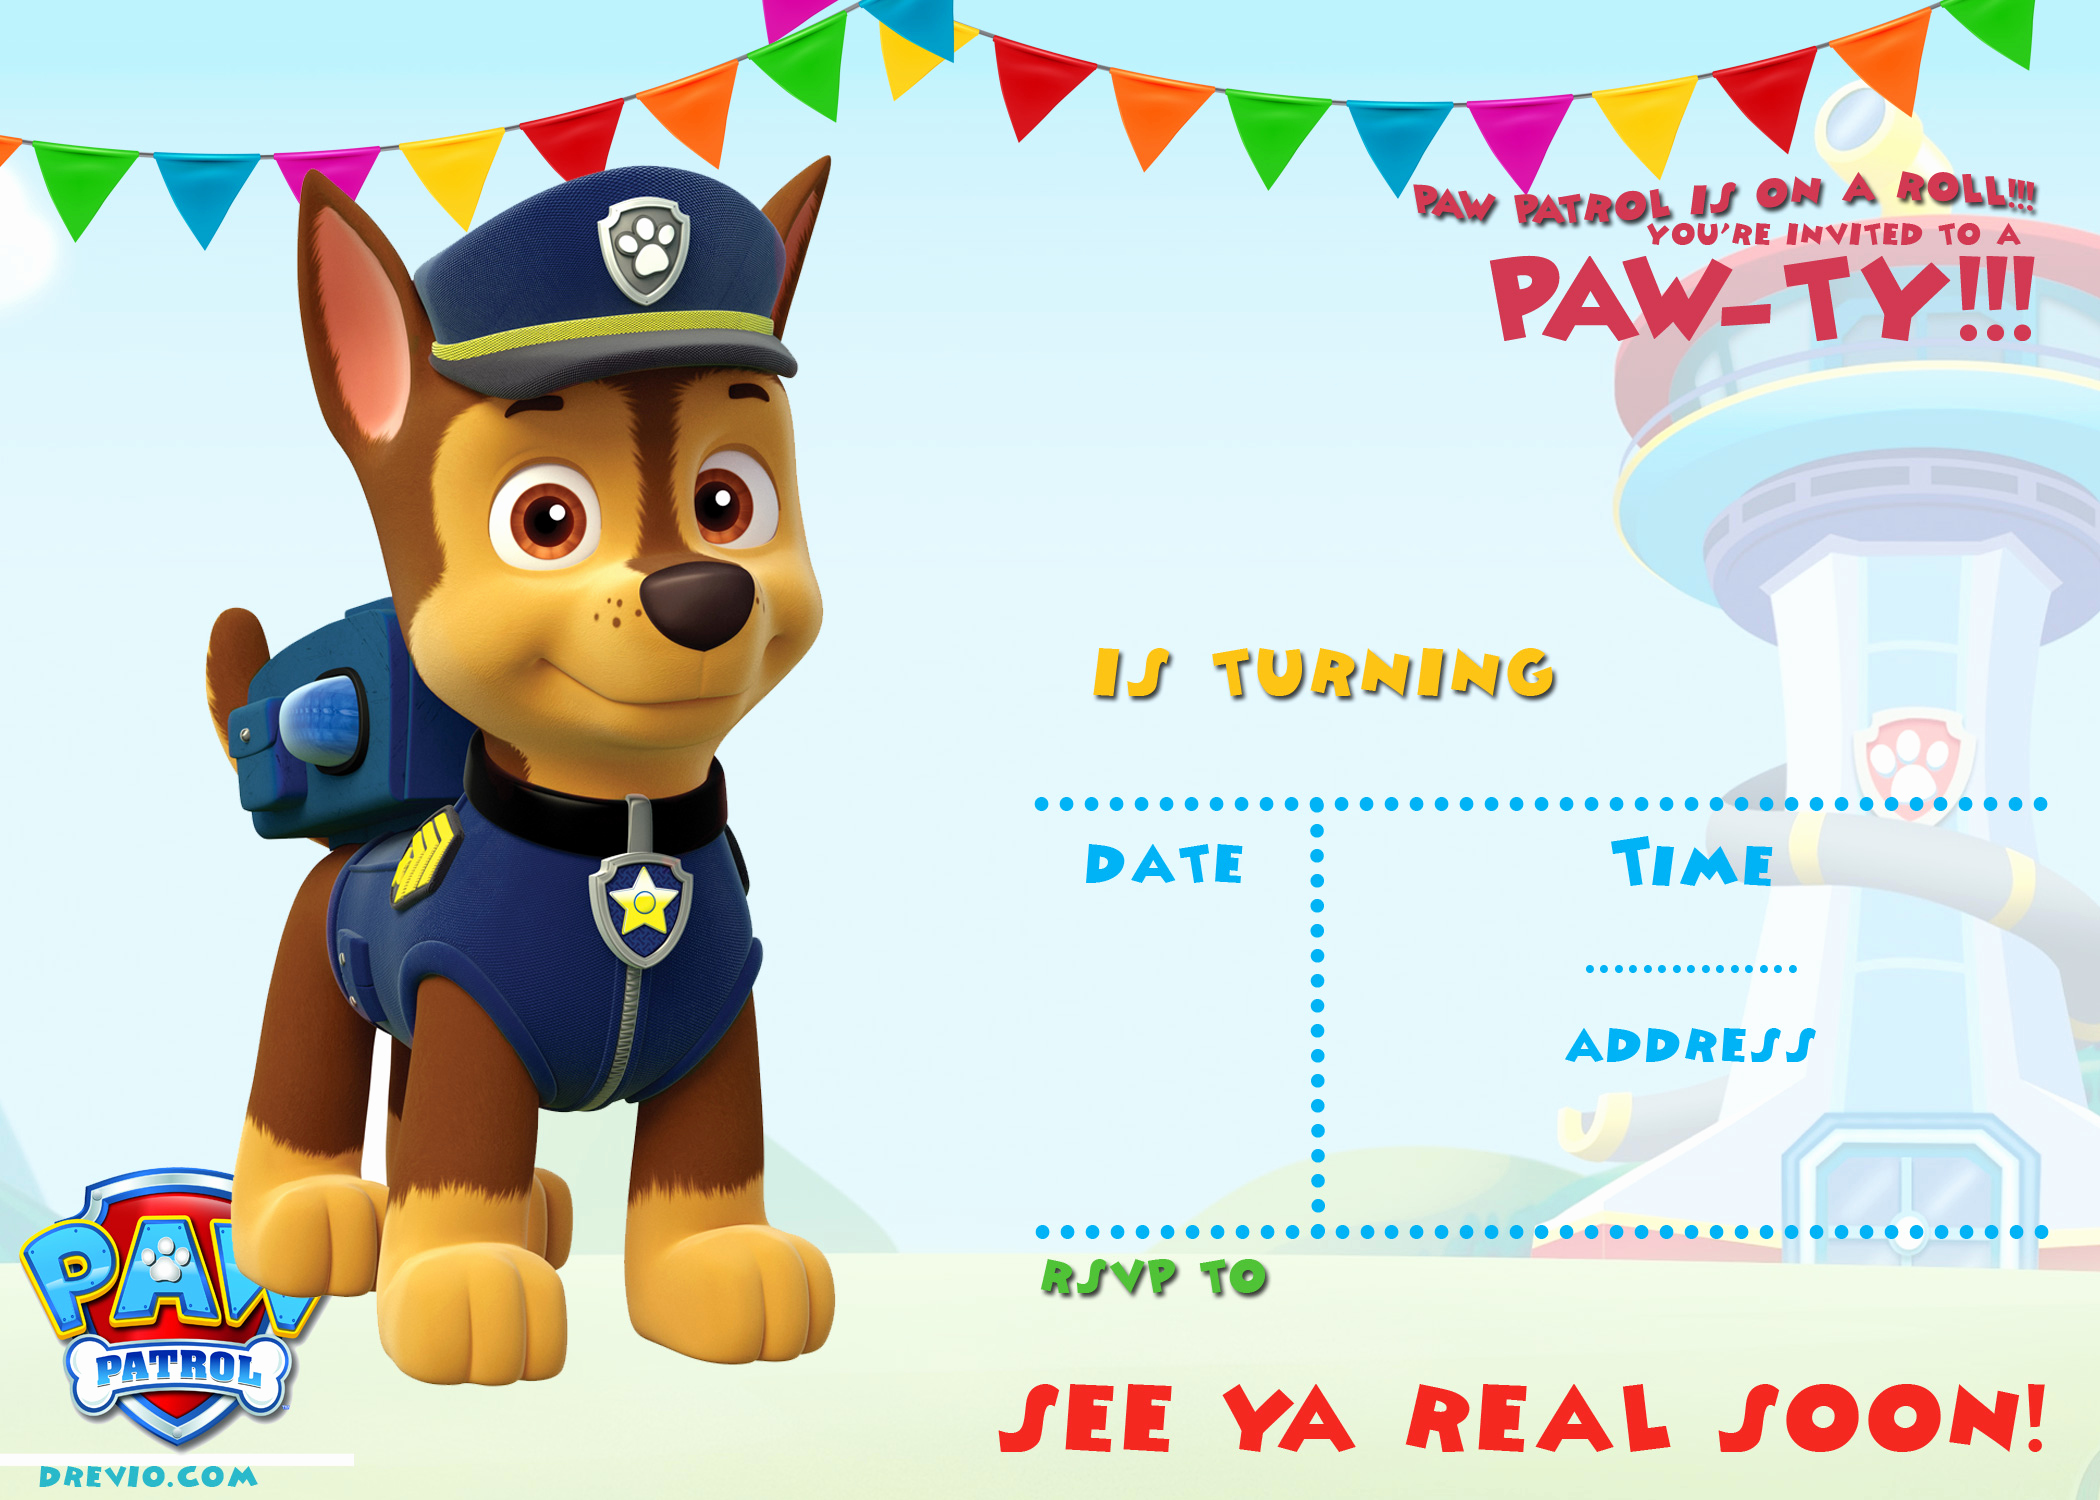 Paw Patrol Invitation Template Blank Beautiful Free Printable Paw Patrol Birthday Invitation Ideas